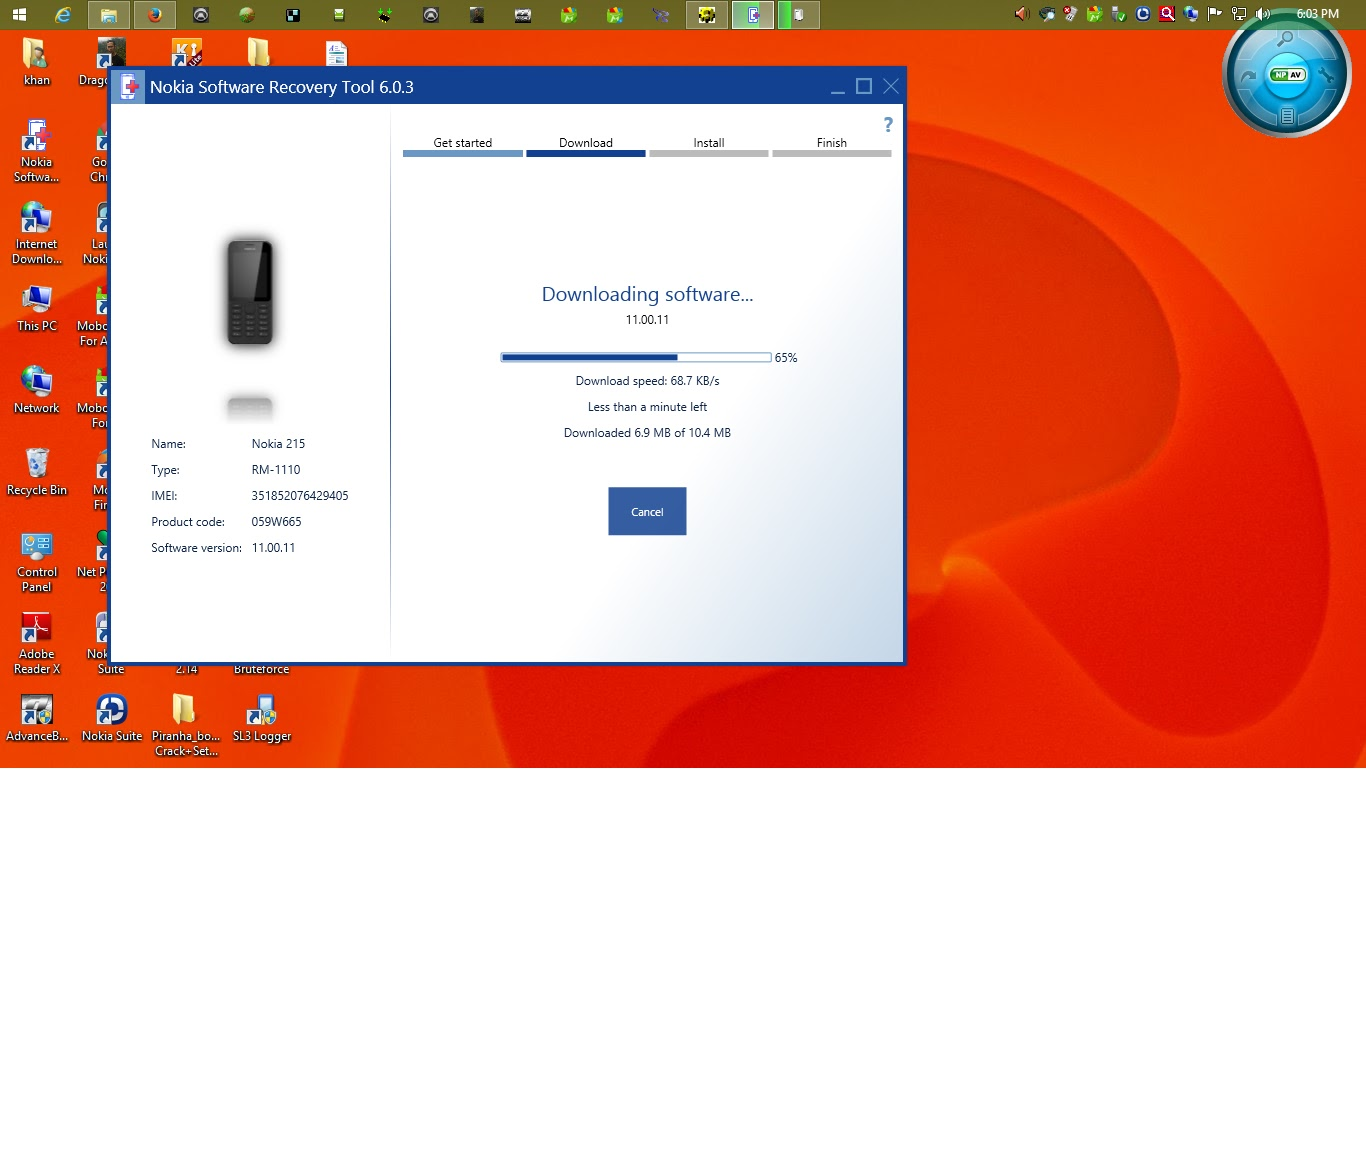 succesfull unlock & flash nokia 215 rm-1110 + mtk-6260